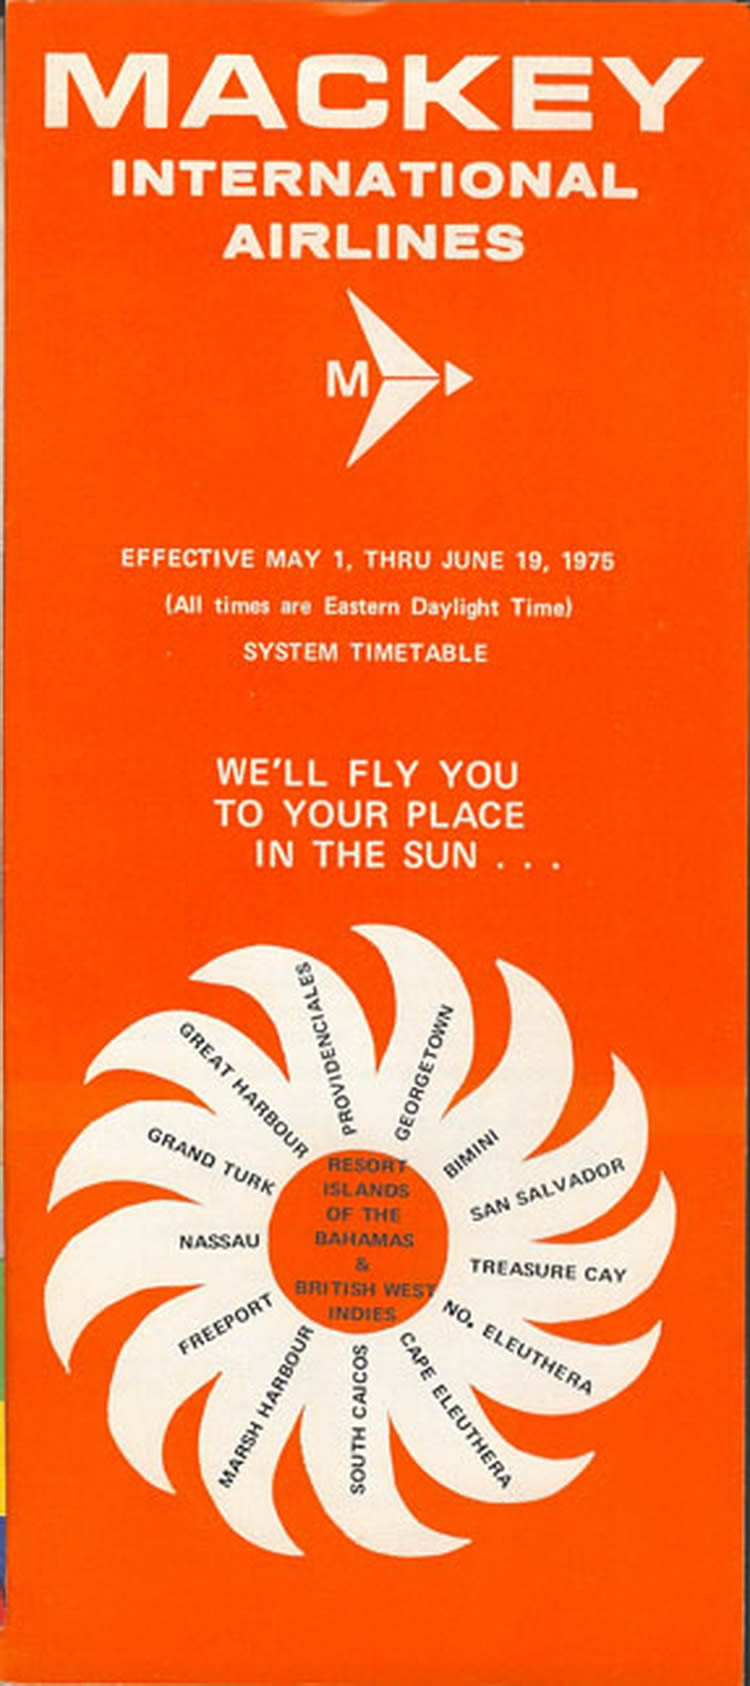 vintage airline timetable for Mackey Airlines